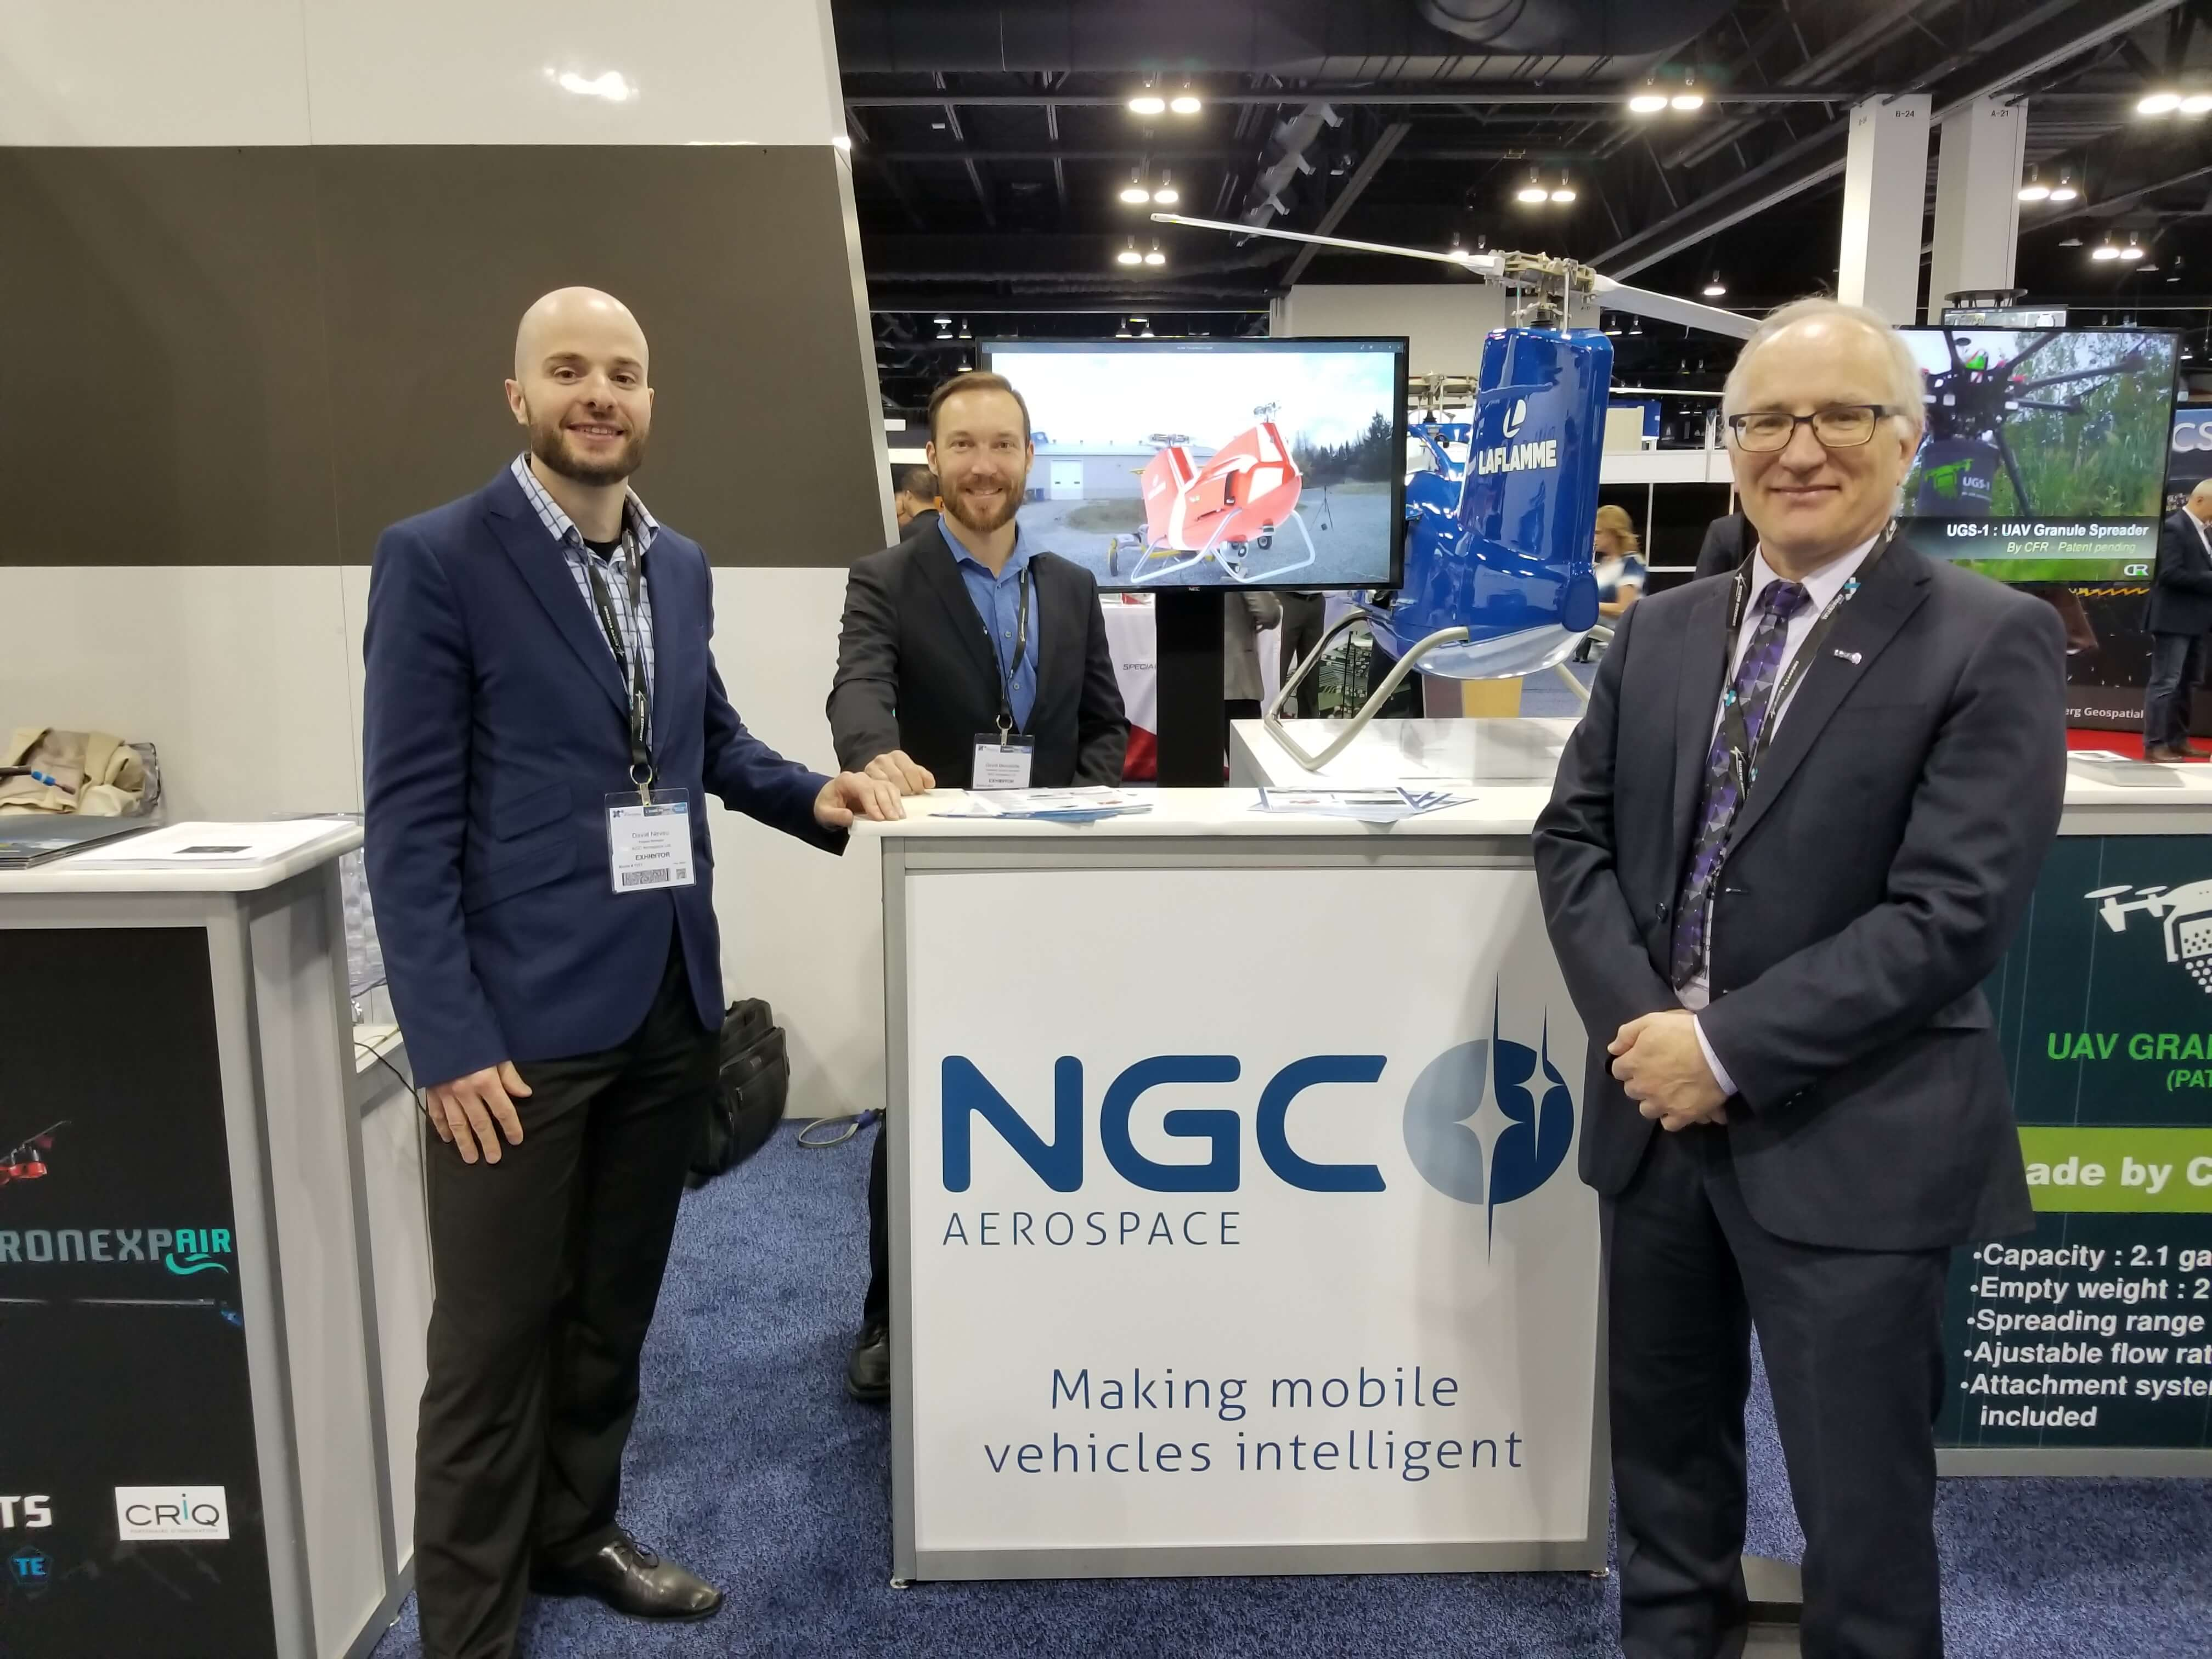 NGC booth à XPONENTIAL 2018